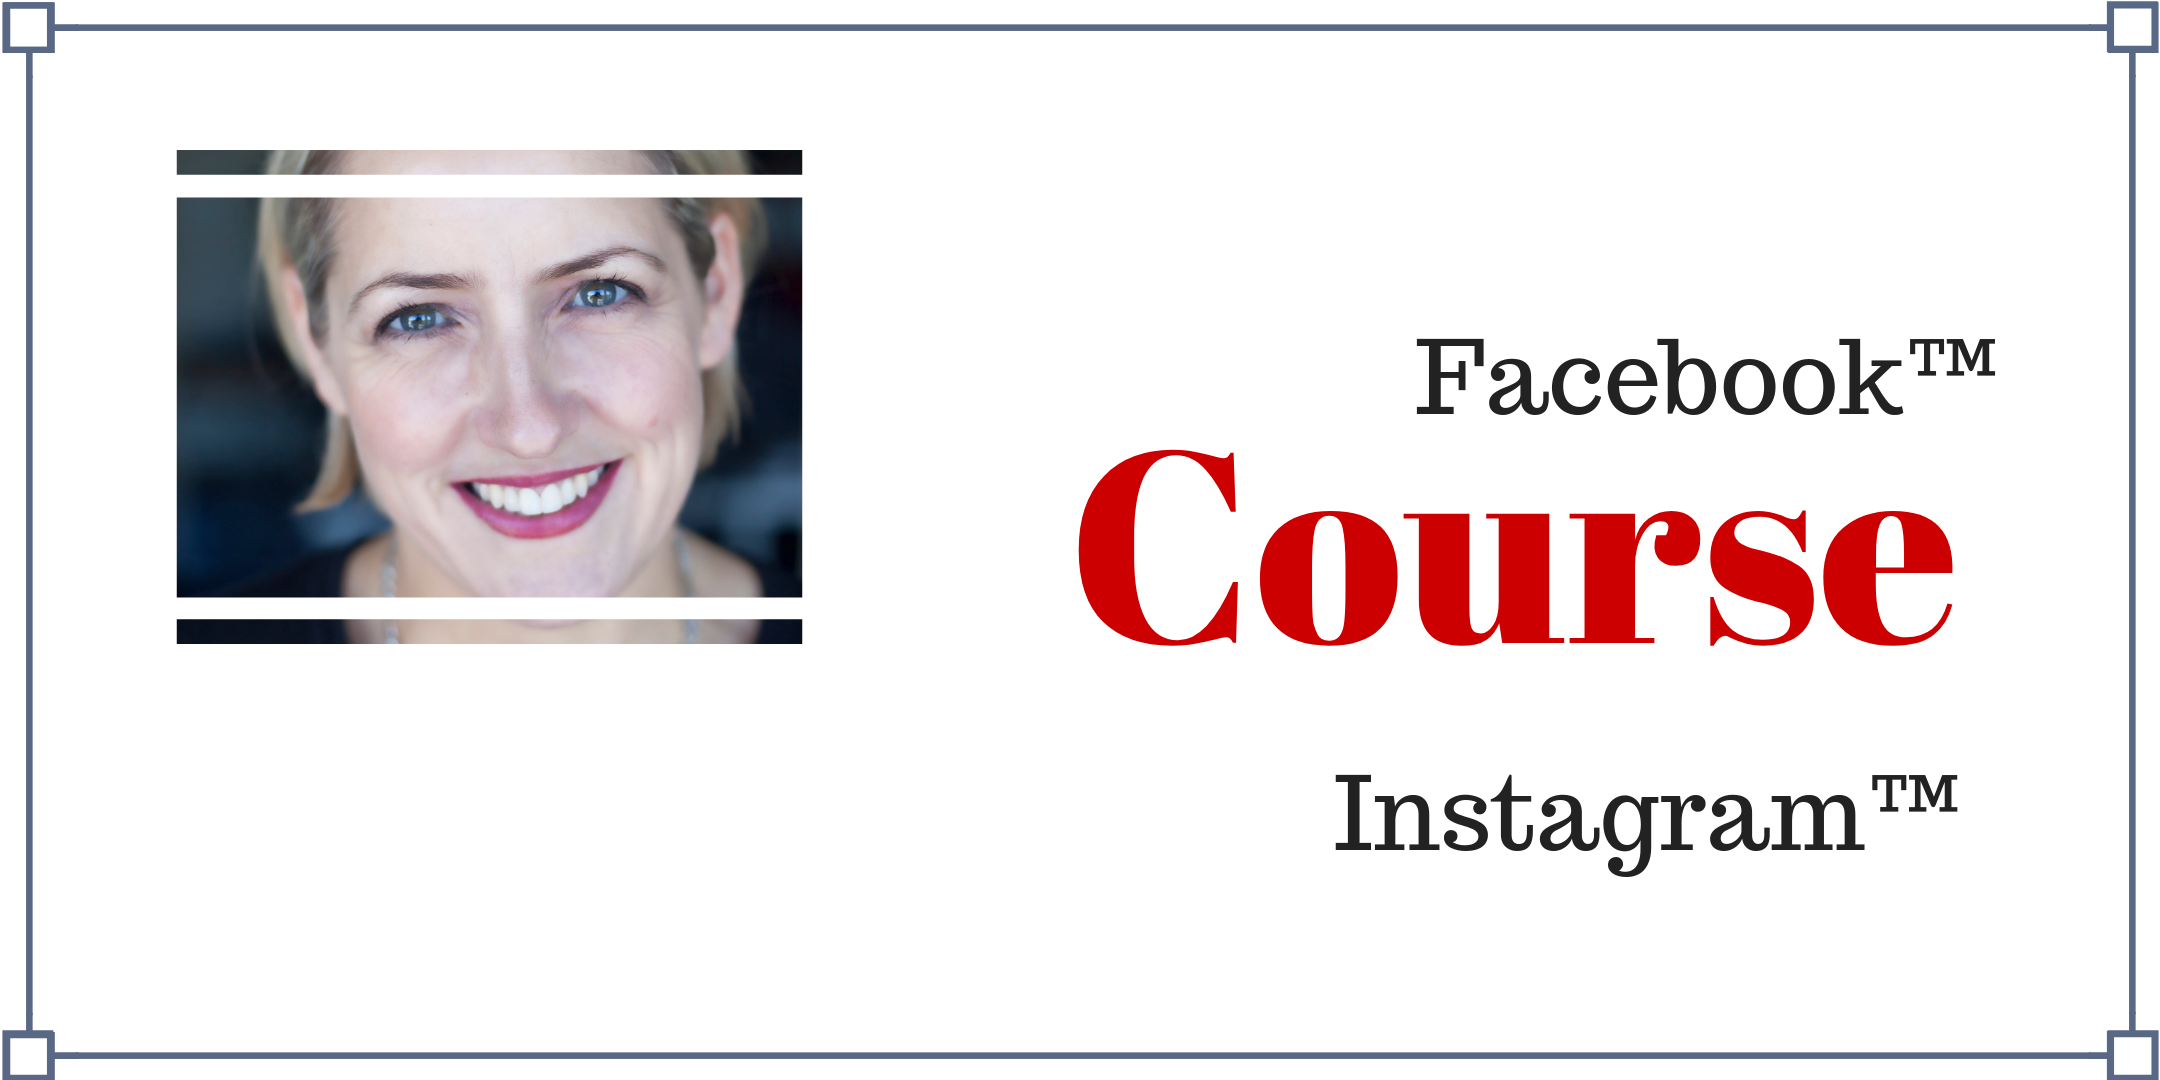 Instagram Training and Facebook Course in Sydney in 2019